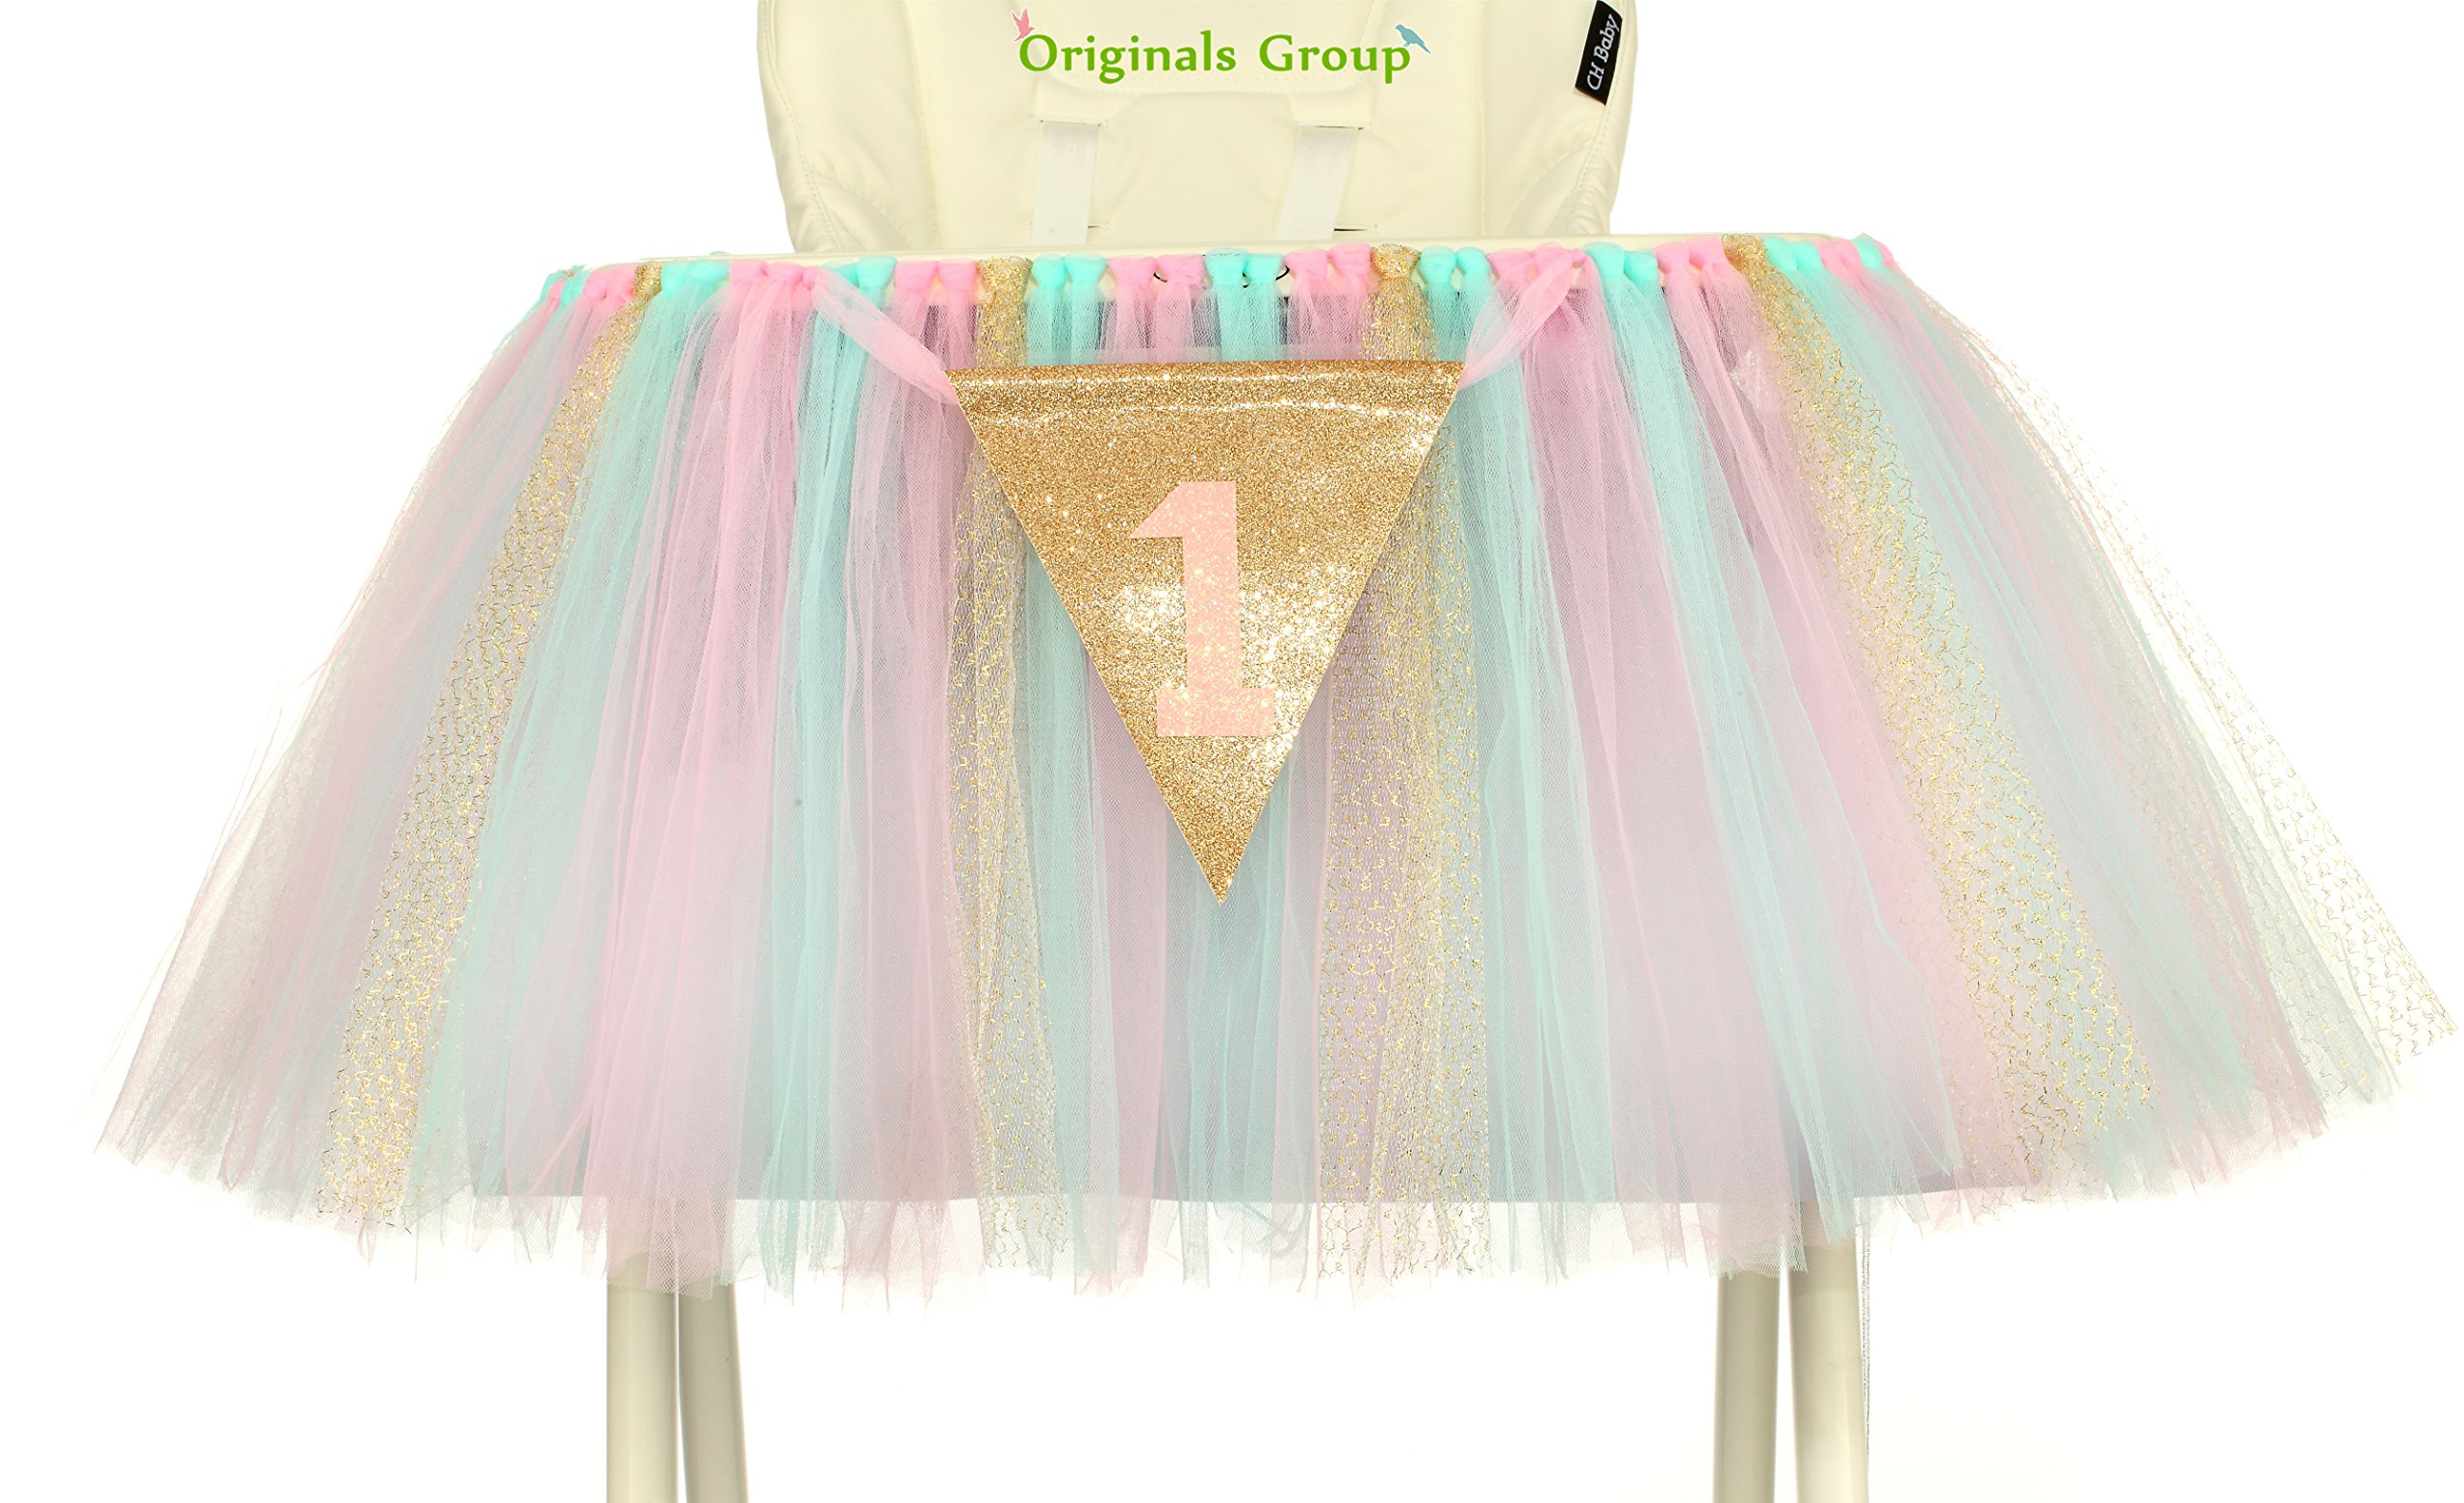 Originals Group 1st Birthday Originals Group 1st Birthday Frozen Tutu for High Chair Decoration for Party SuppliesTutu for High Chair Decoration for Party Supplies (Mint+Pink+Gold) by Originals Group